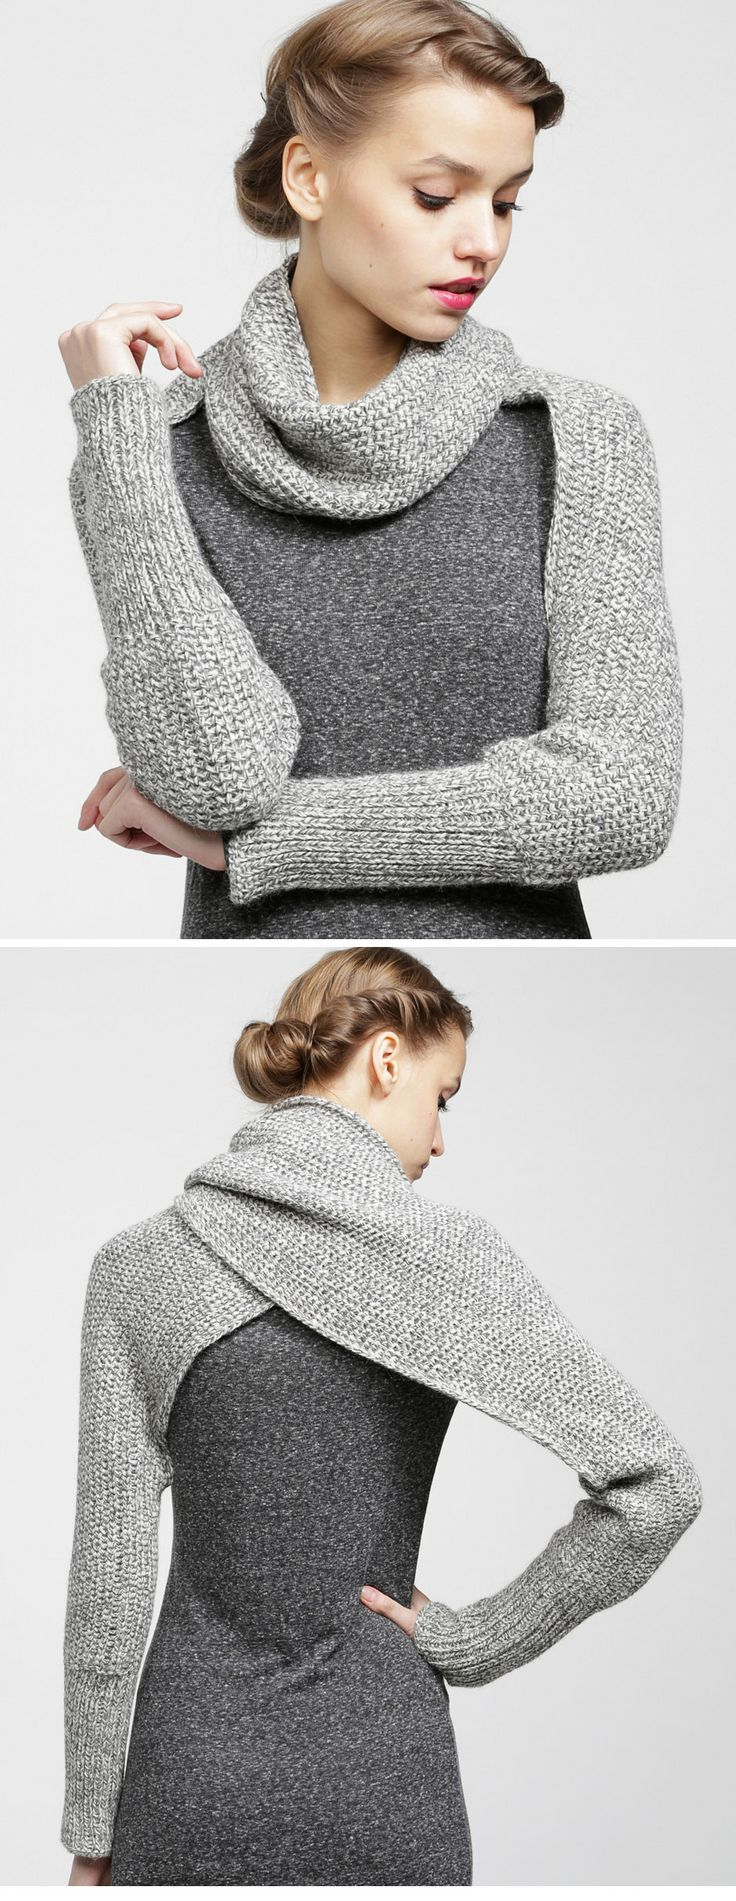 Sleeve wrap | Wool and the Gang